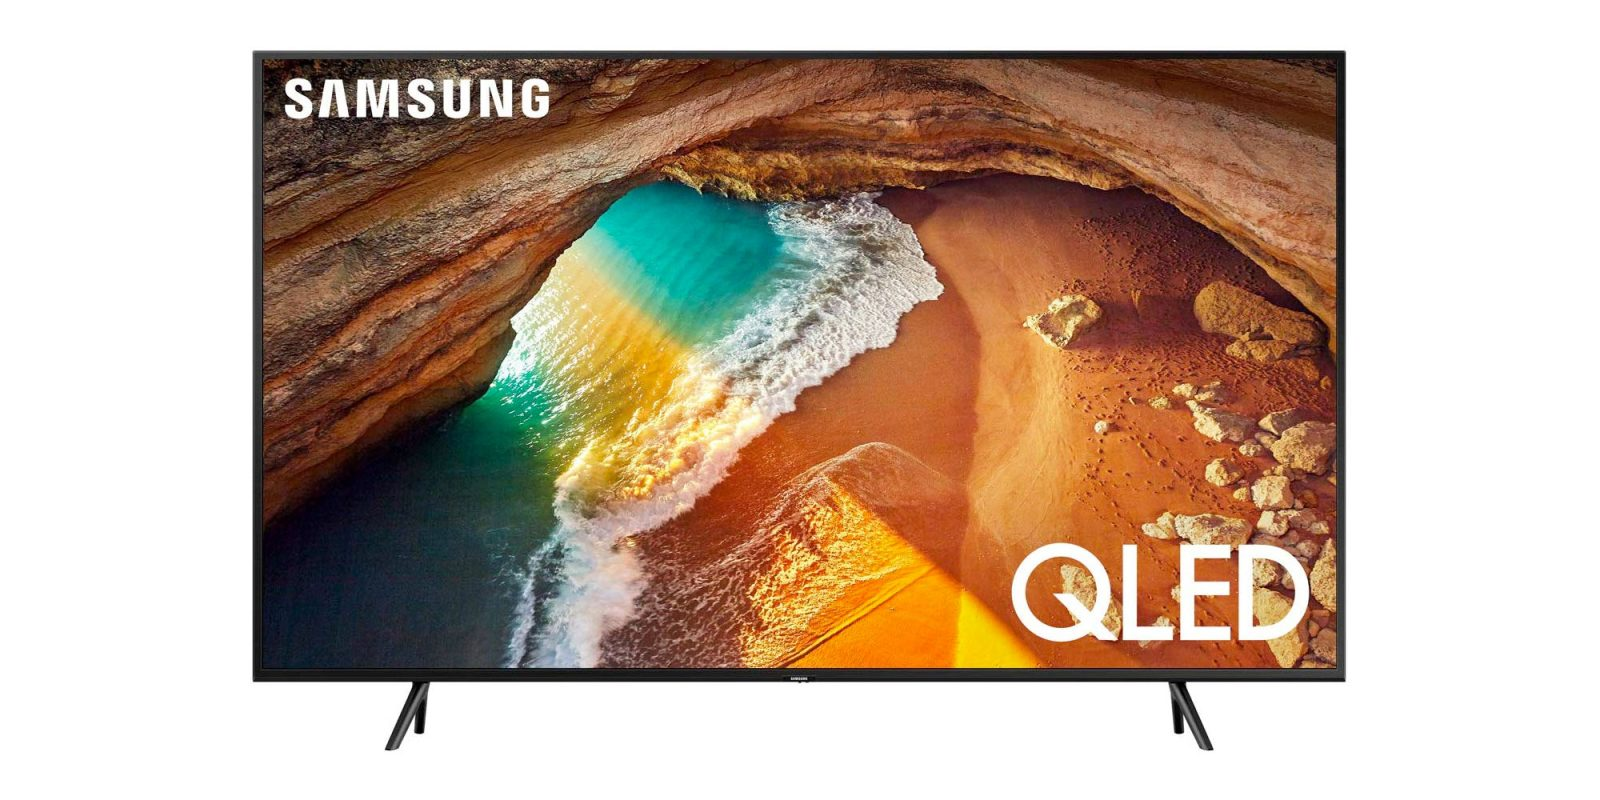 Amazon is offering up to 20% back on select 4K OLED TVs, outdoor gear, more